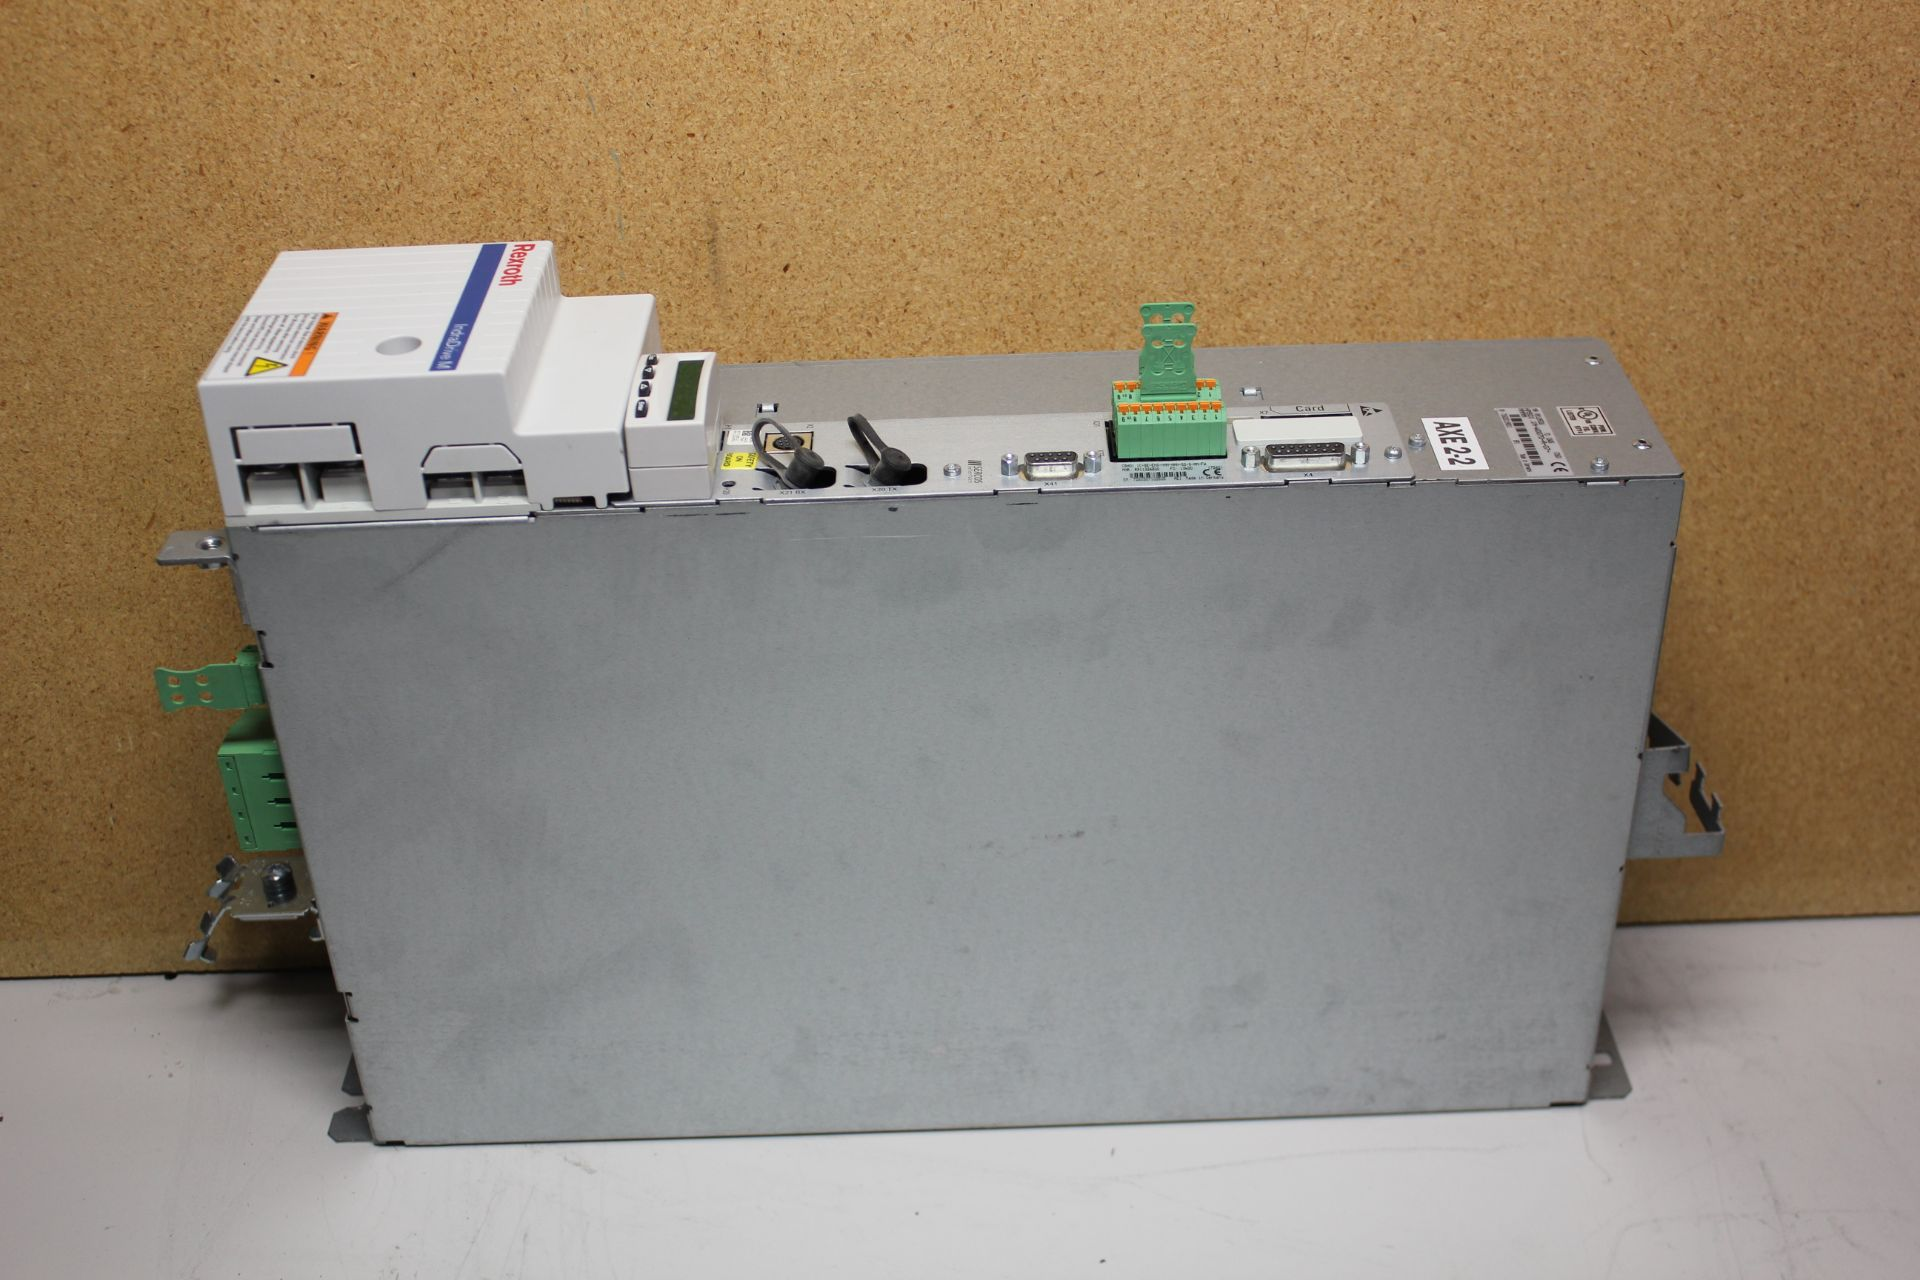 REXROTH INDRADRIVE M SINGLE AXIS INVERTER SERCOS MODULE